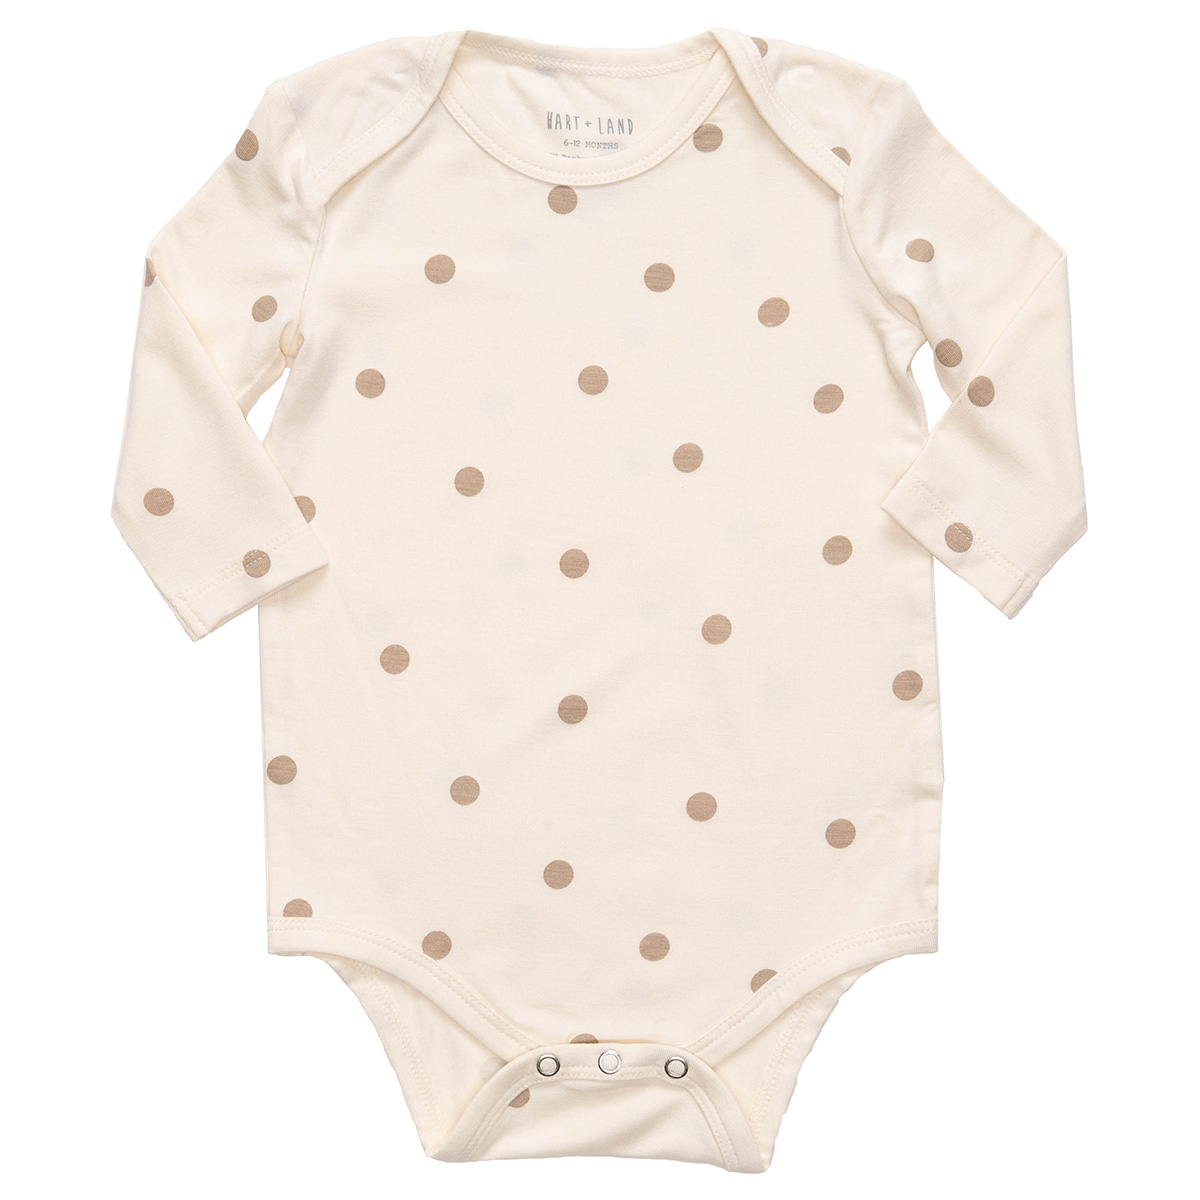 HART + LAND Polka Dots Long Sleeve Lap Shoulder Bodysuit